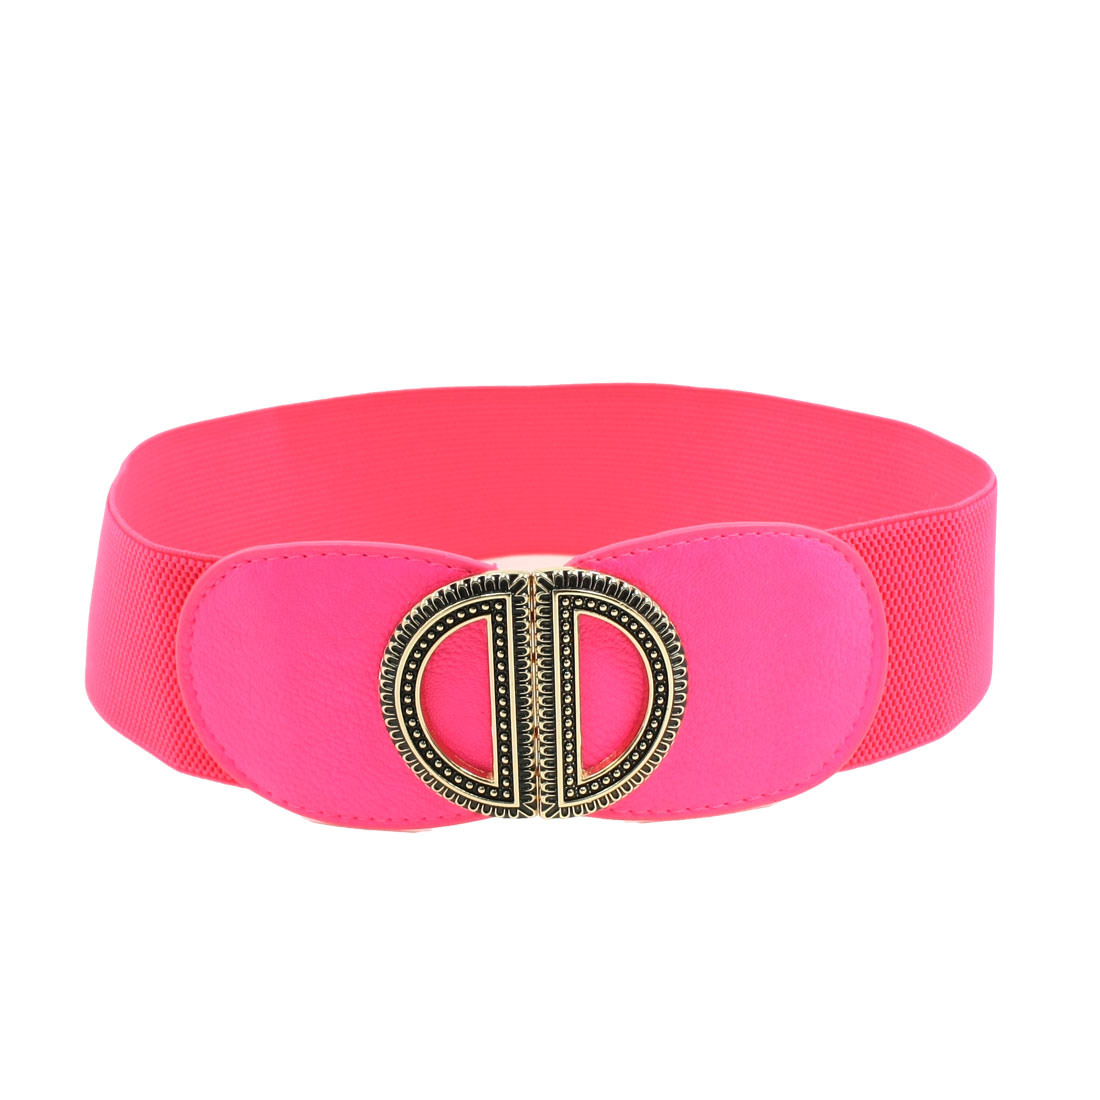 Metal Dual D Interlocking Buckle Fuchsia Elastic Waist Cinch Belt for Ladies